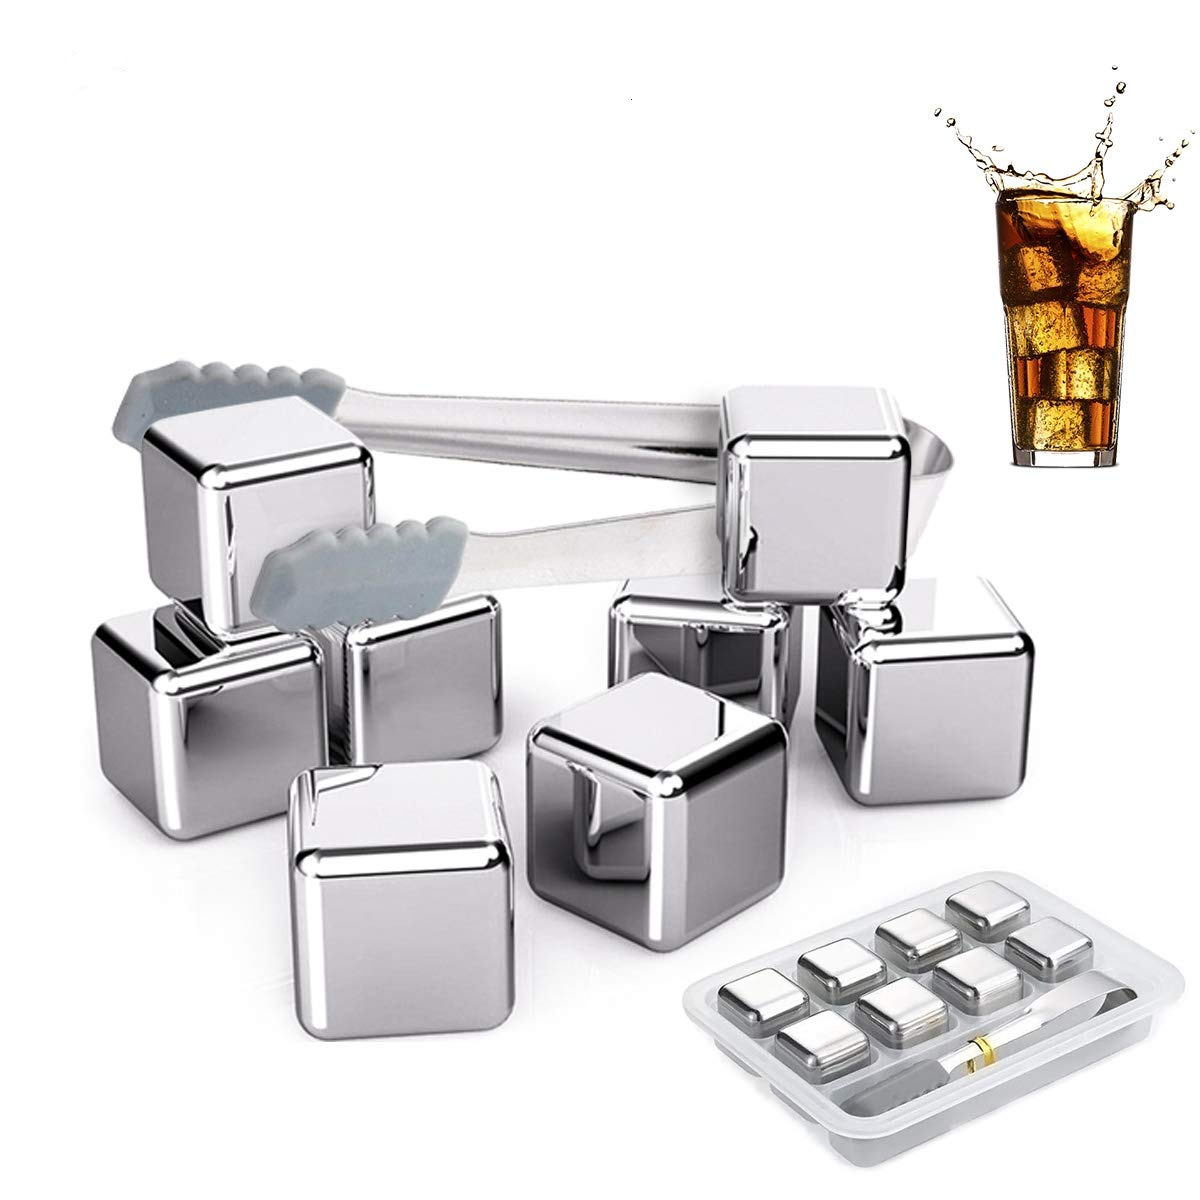 Fangie Exclusive Stainless Steel Whisky Stones  High Cooling Technology Reusable Ice Cubes Men Set of 8 Chilling Stones Ice Tongs  Classy Coasters  Birthday